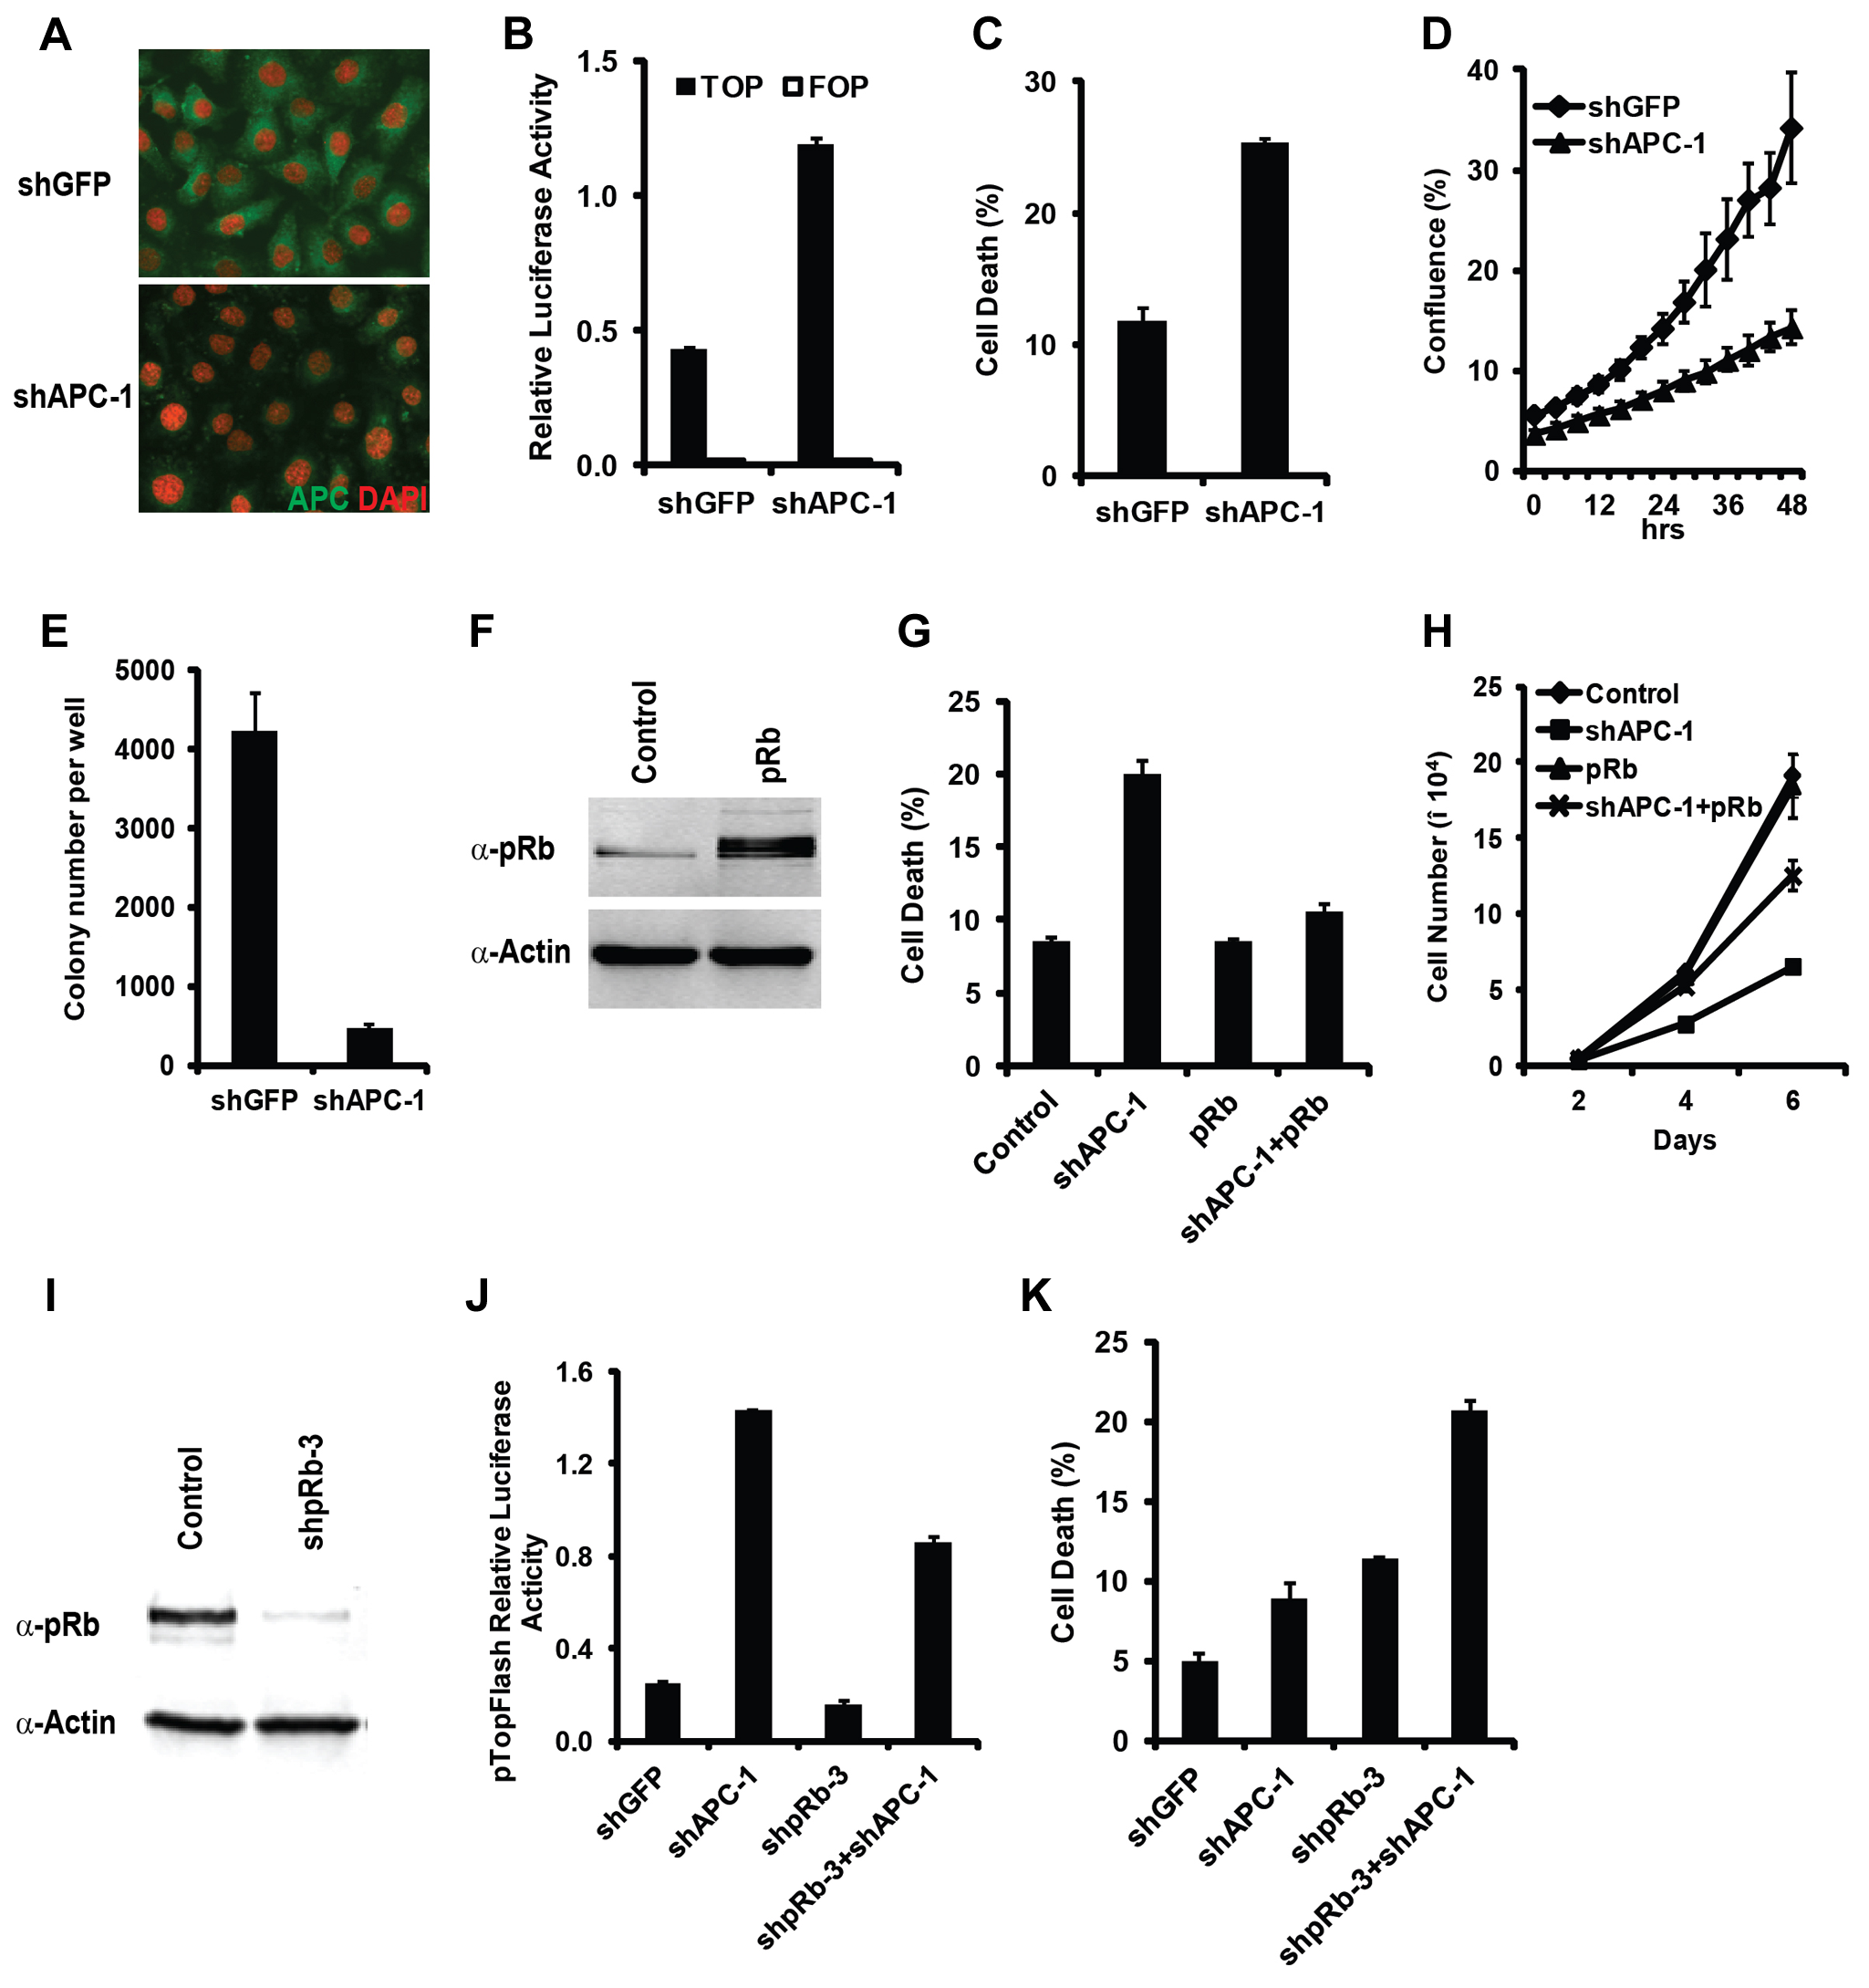 Hyperactivation of Wnt signaling and inactivation of Rb induced synergistic cell death effect in mammalian cells.